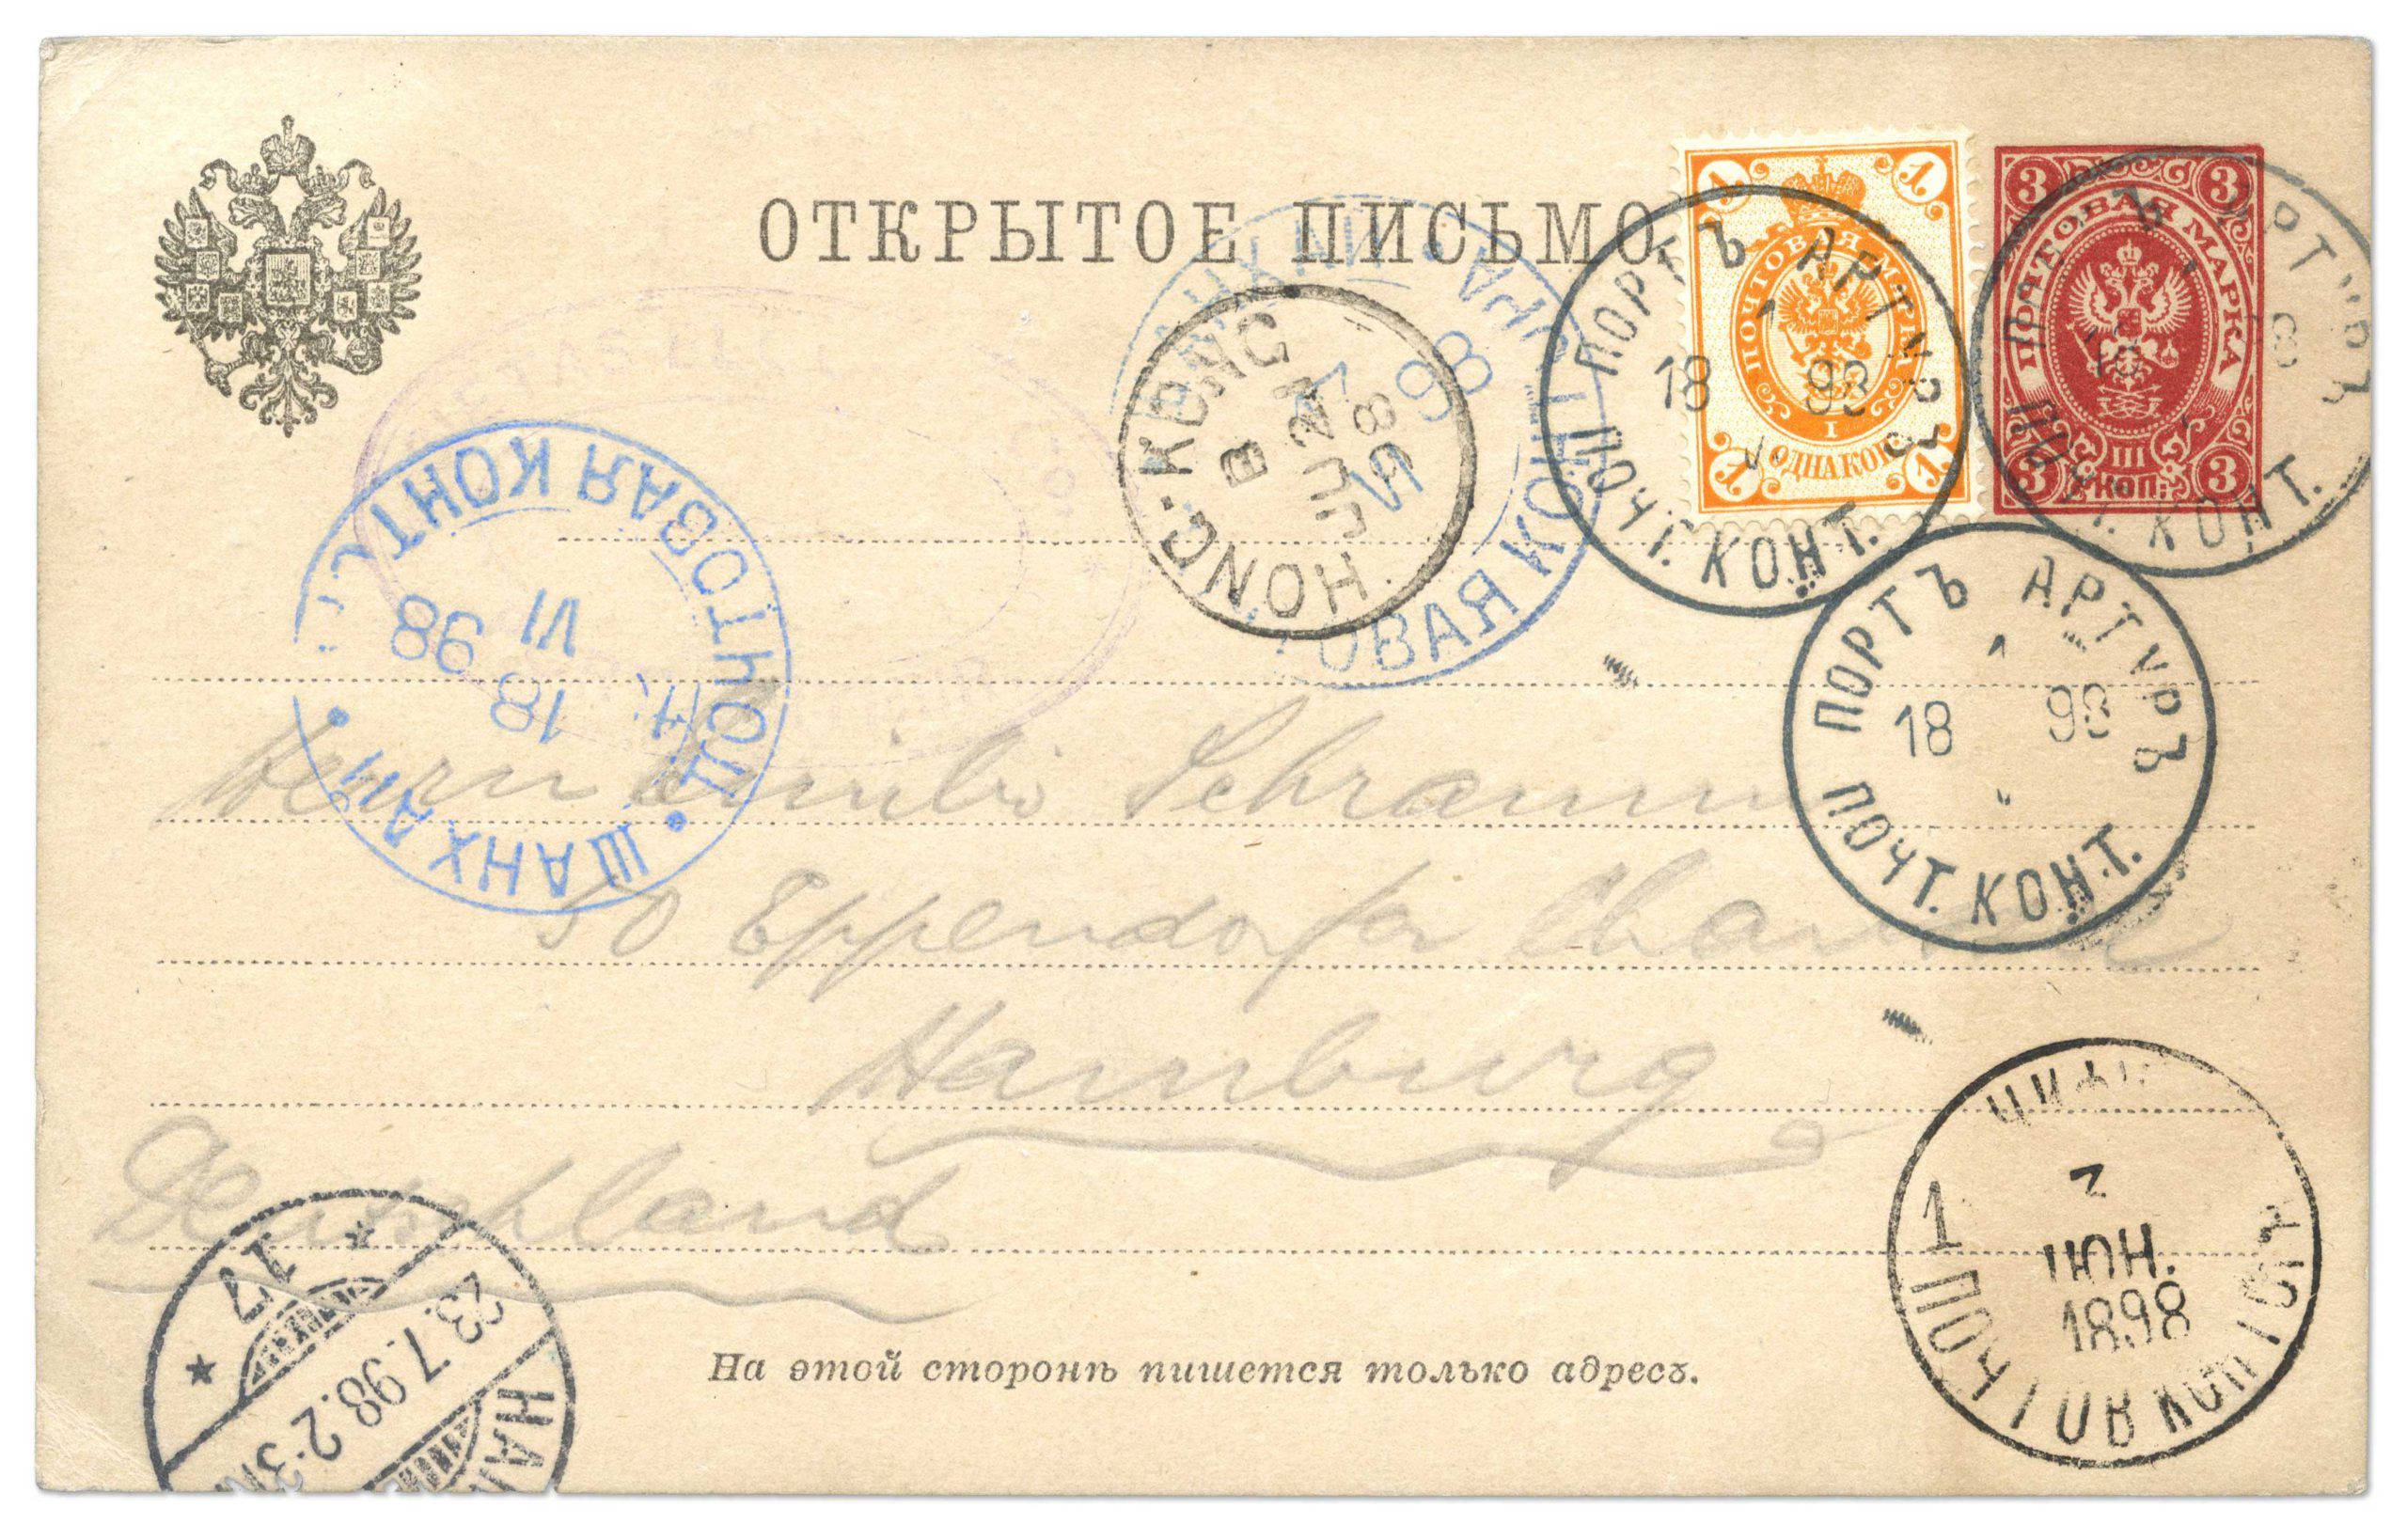 one of the earliest known uses of a 3k stationery card (lot 40226) uprated with the Russia Arms 1k for the overseas rate